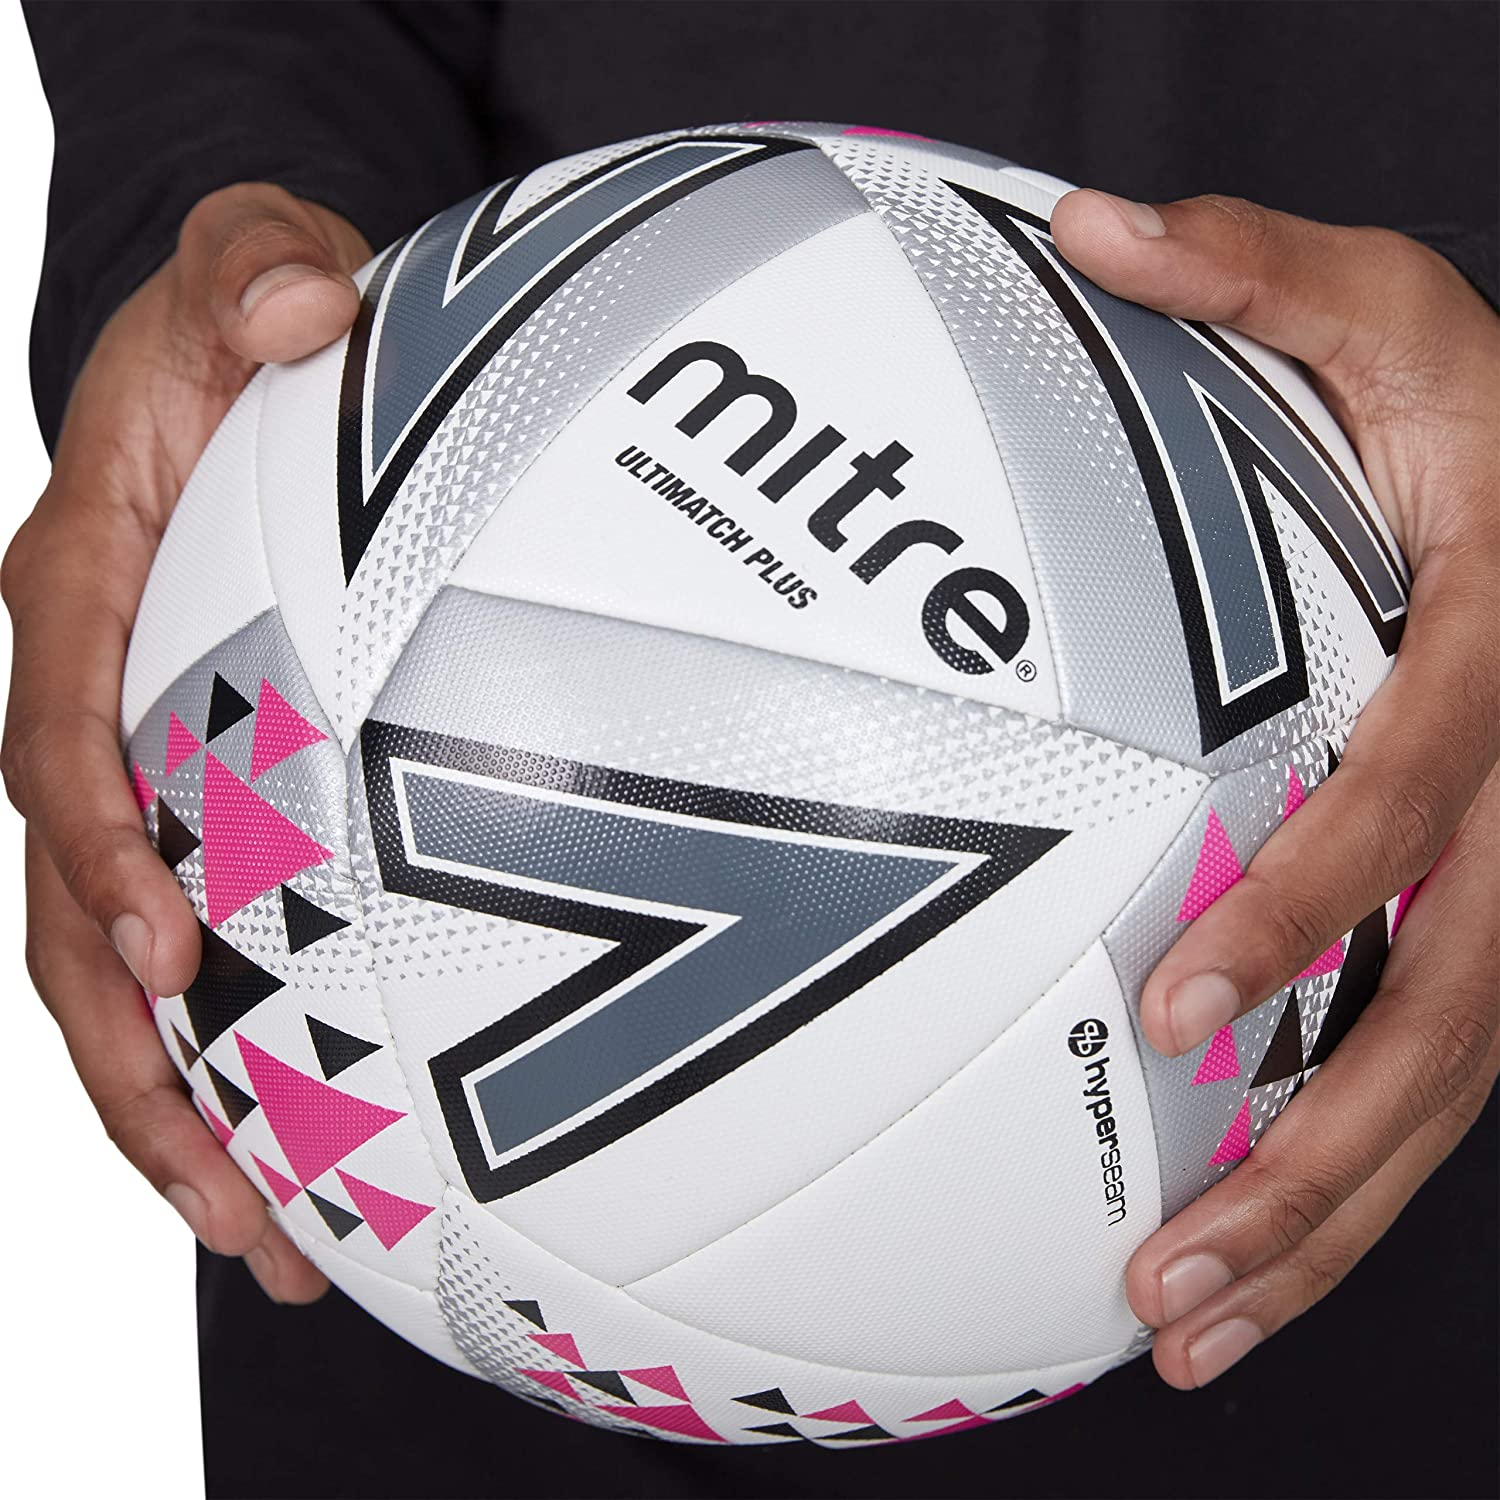 14.99 NEW    Mitre Football Ultimatch White GOOD MATCH BALL  size 4 or 5